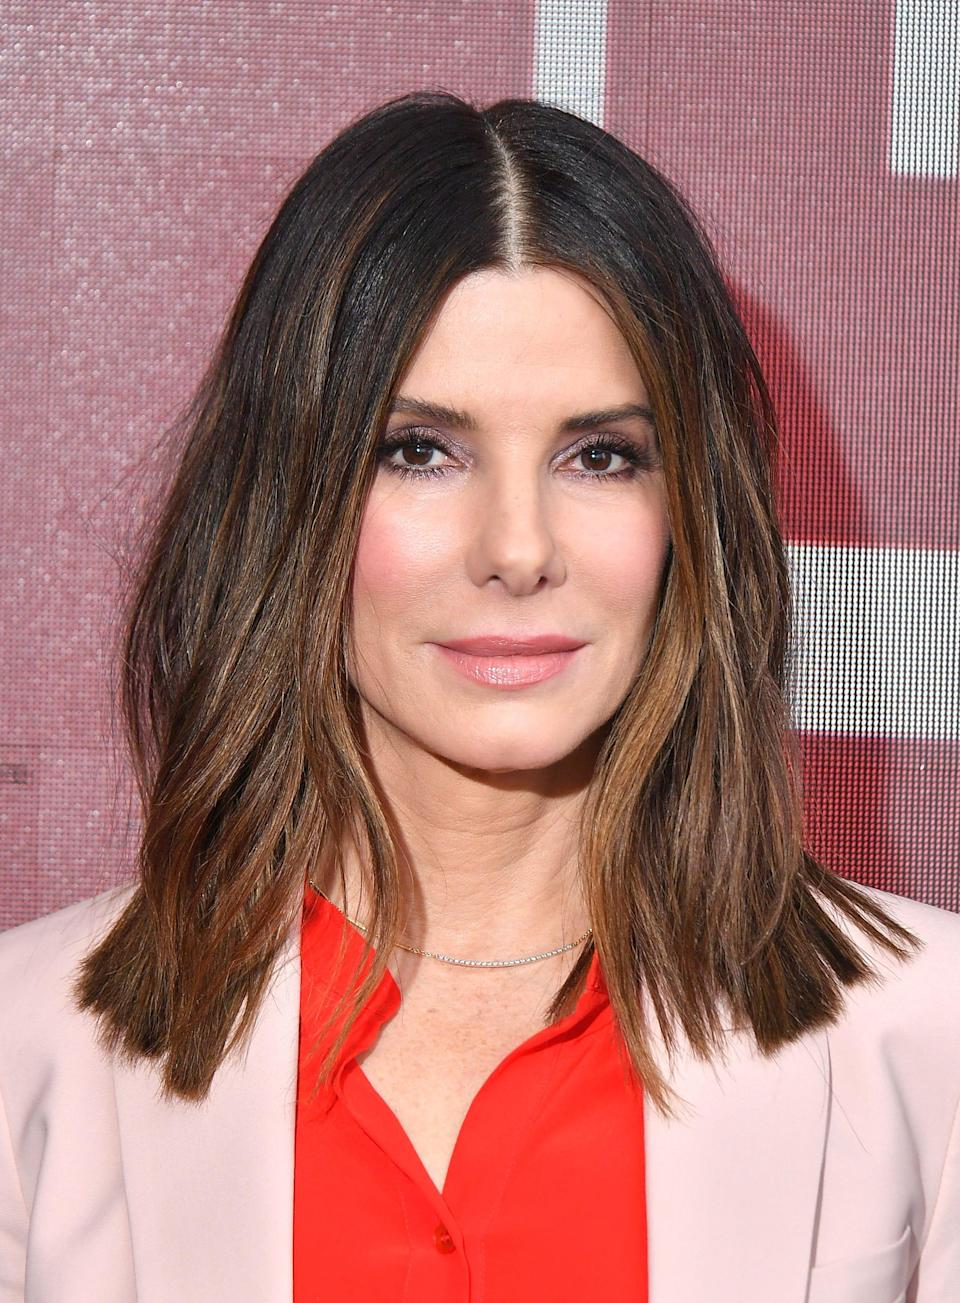 Sandra Bullock was a surprise guest on a 'Red Table Talk' episode honoring 'hero mothers' on the frontline against coronavirus.